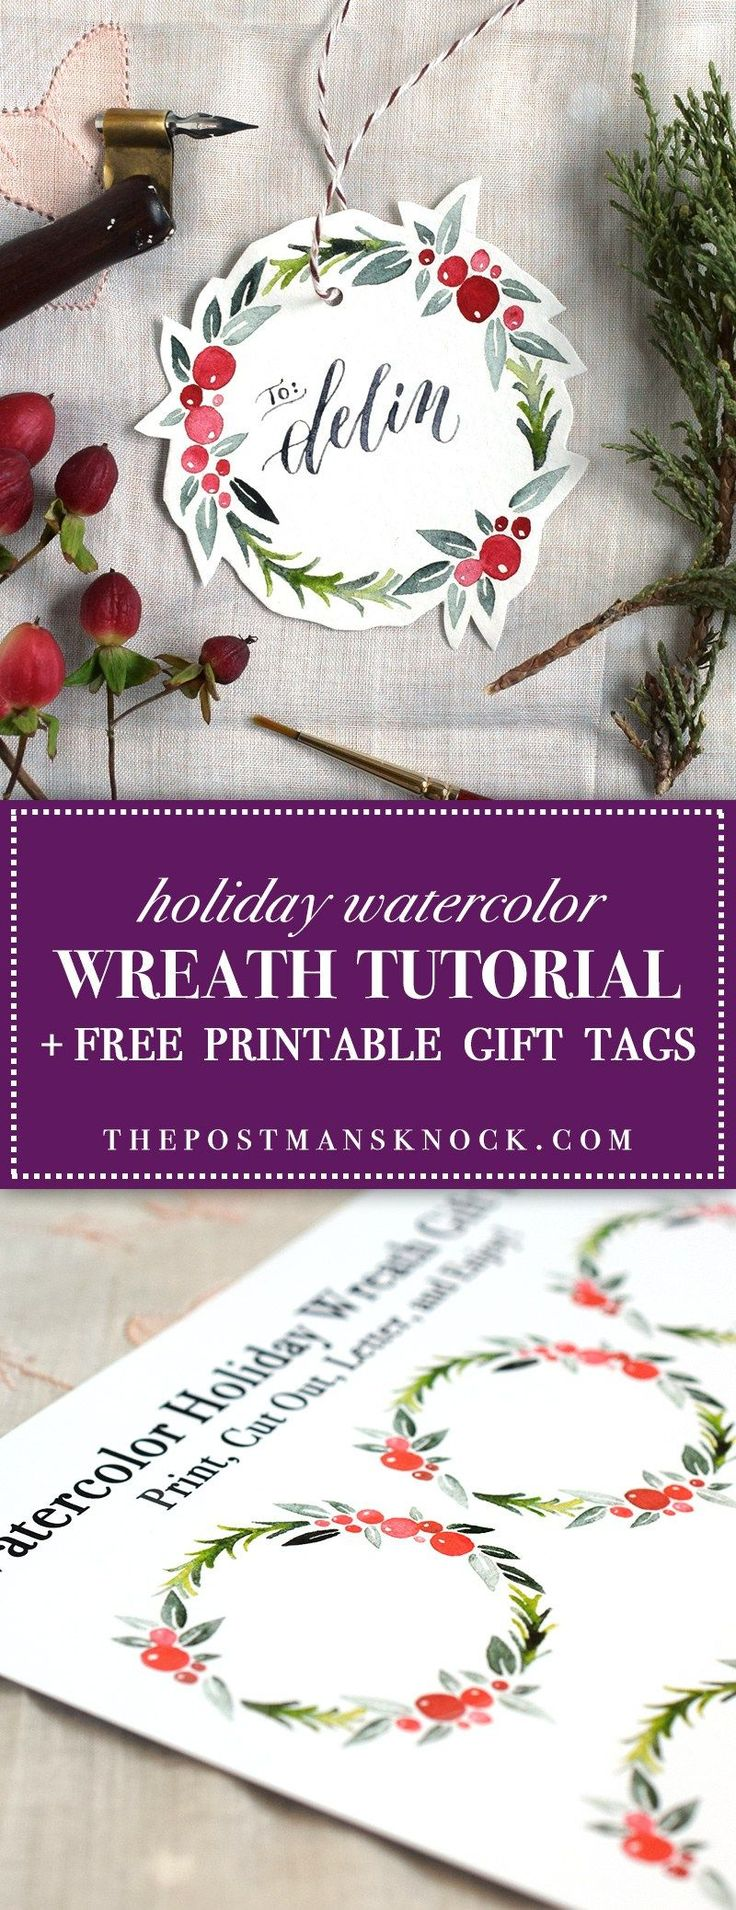 1218 best printables~templates images on pinterest | la la la, merry